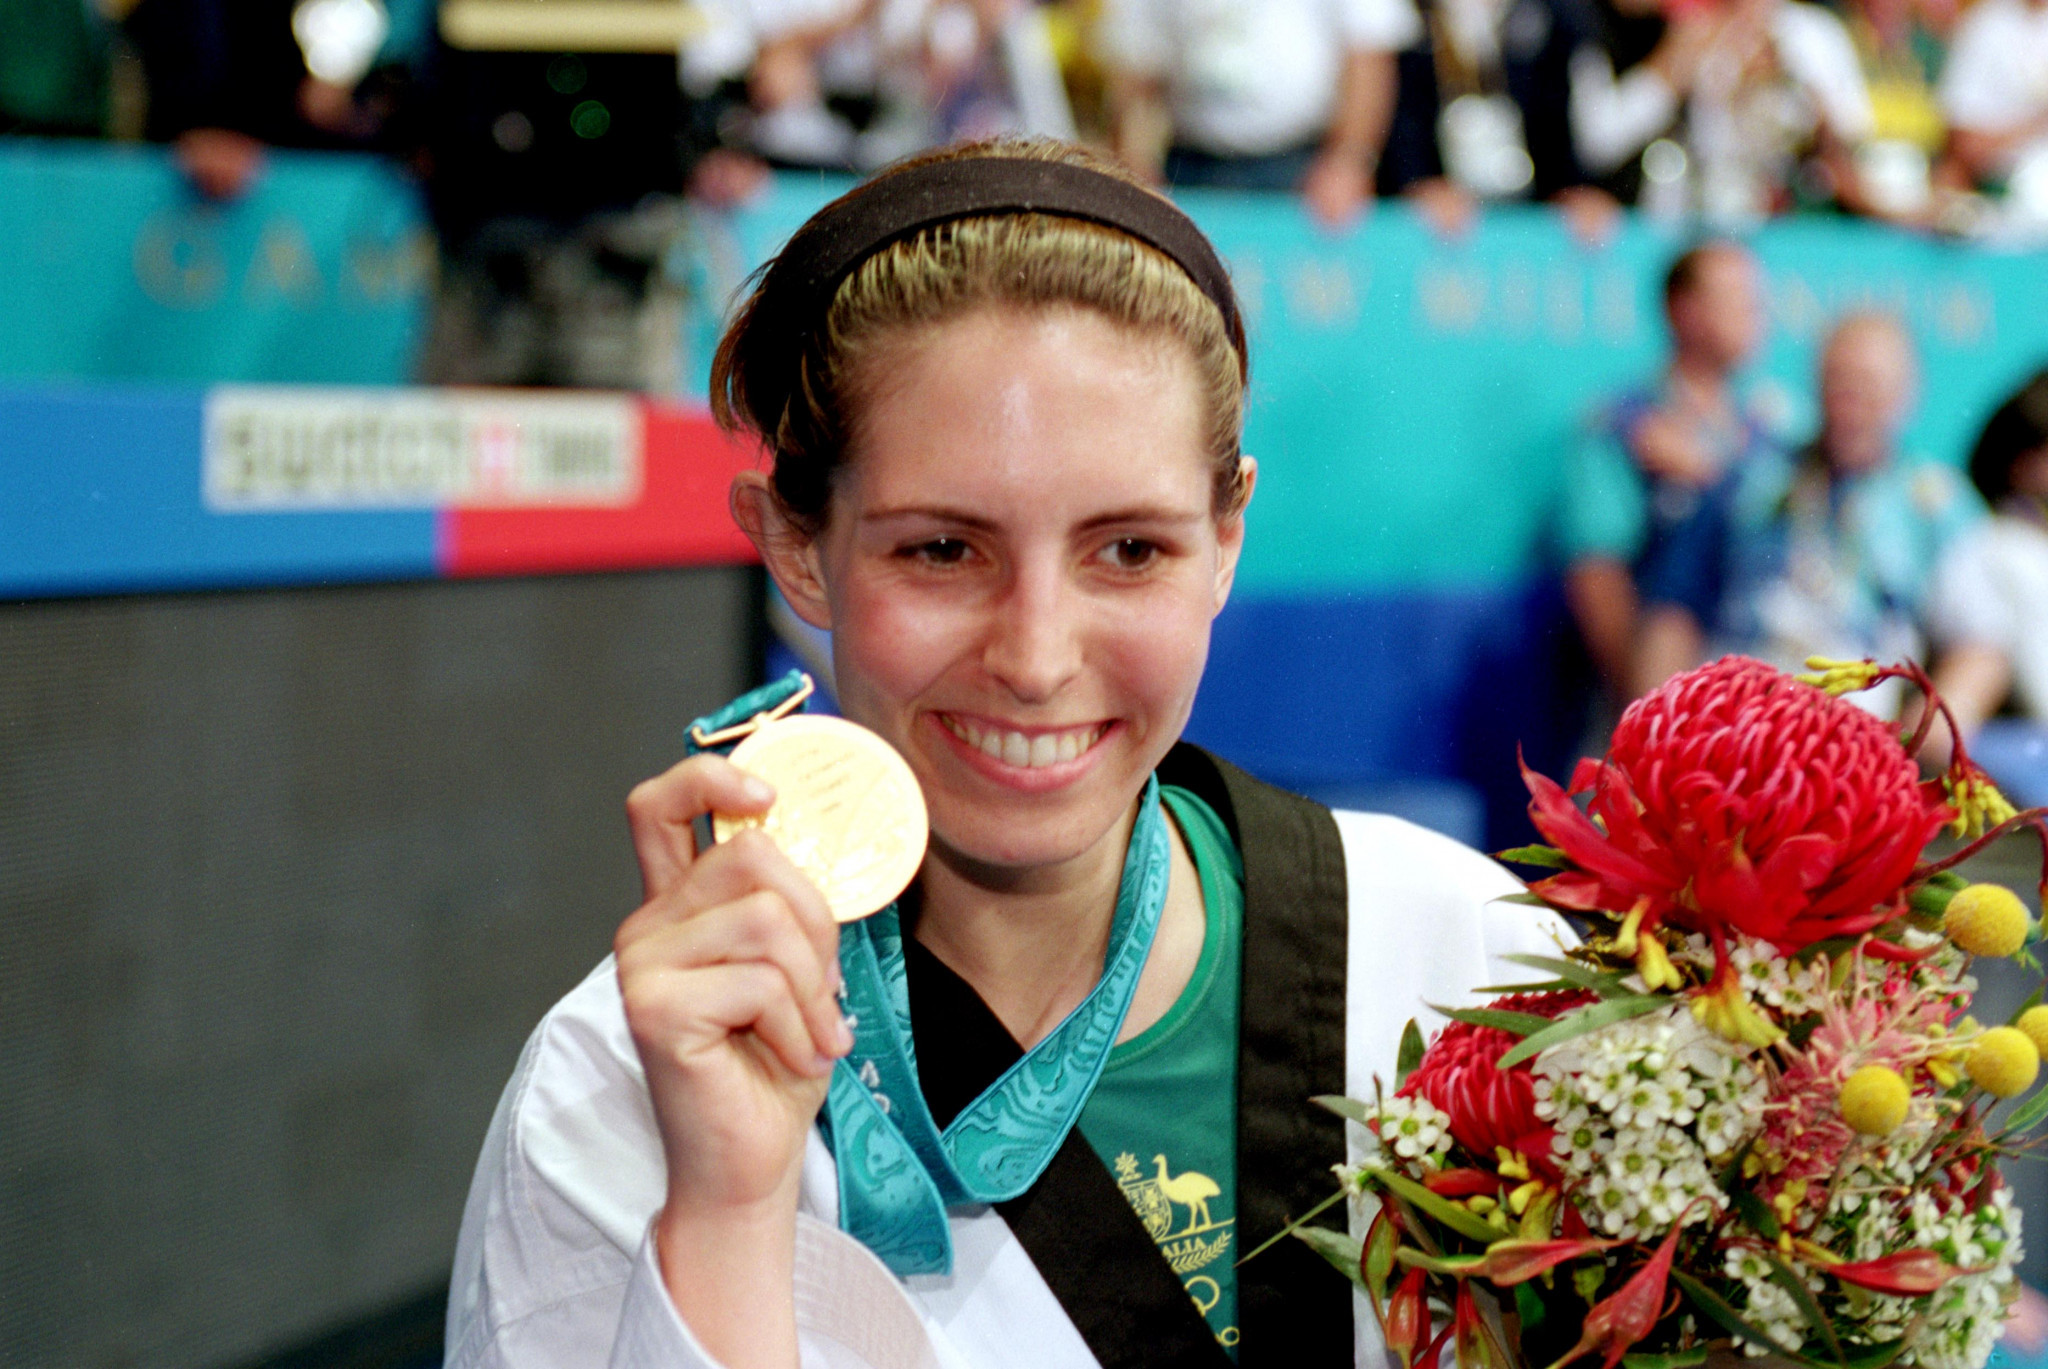 Australian Olympic taekwondo champion asks athletes for help with PhD